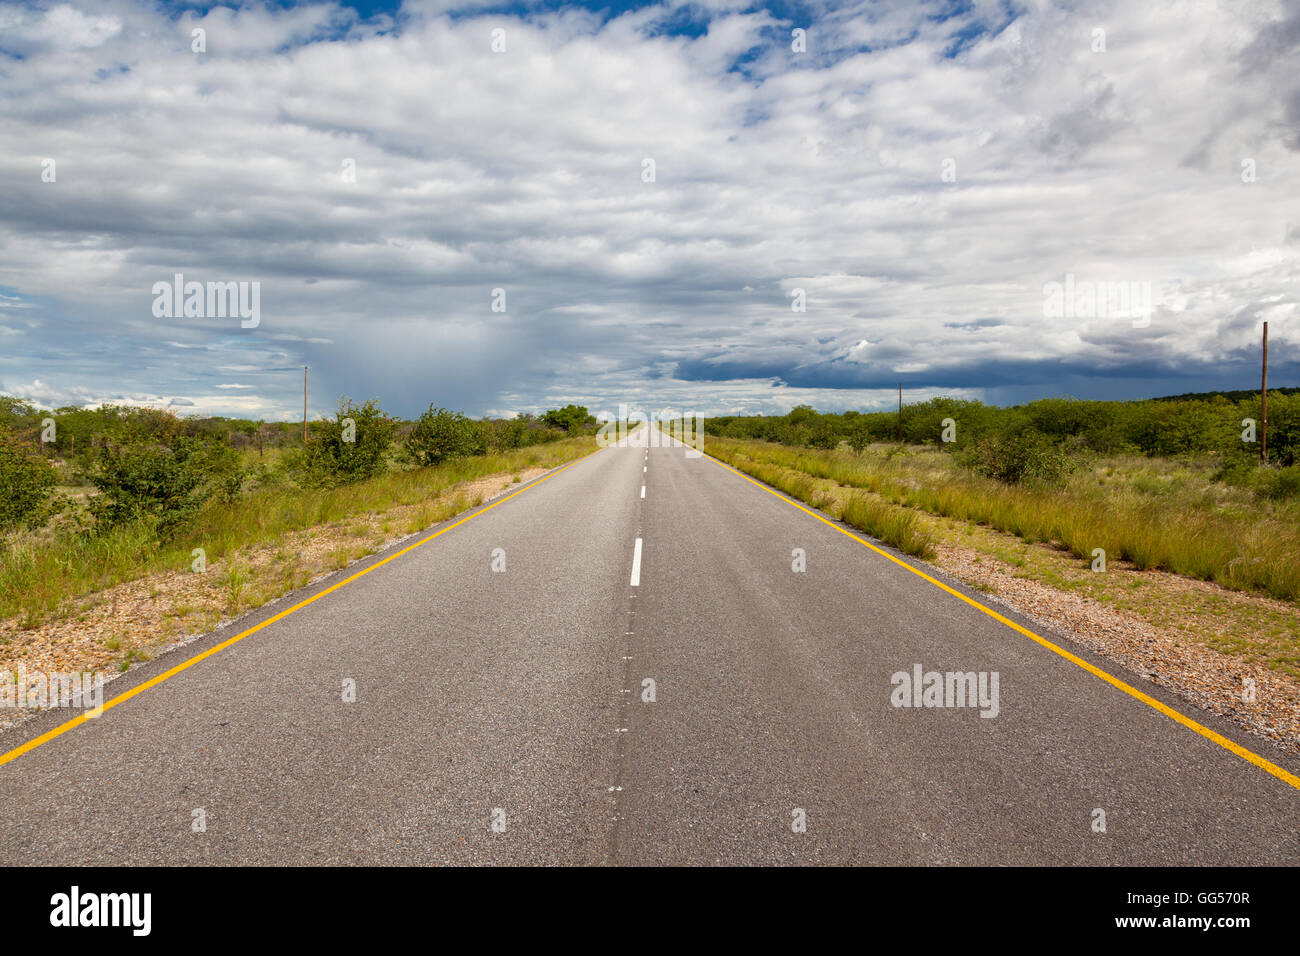 Namibia Rainstorm, Highway C38 near Etosha - Stock Image